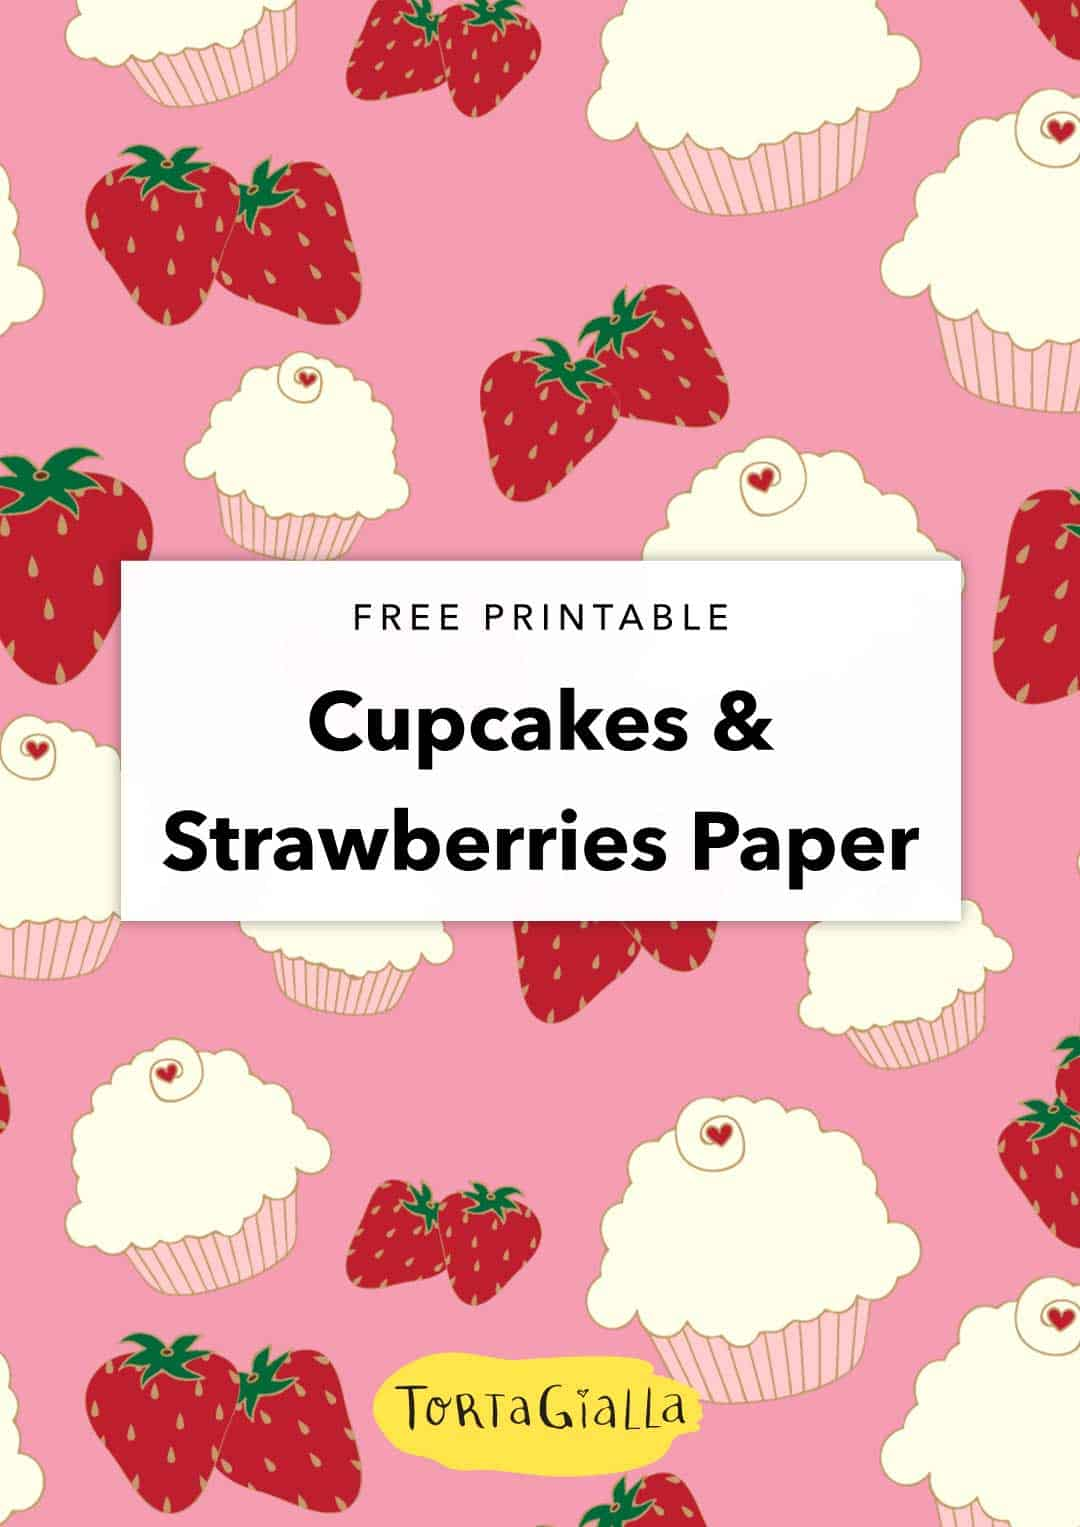 photograph regarding Printable Cupcakes titled Strawberries and Cupcakes Purple Electronic Paper tortagialla